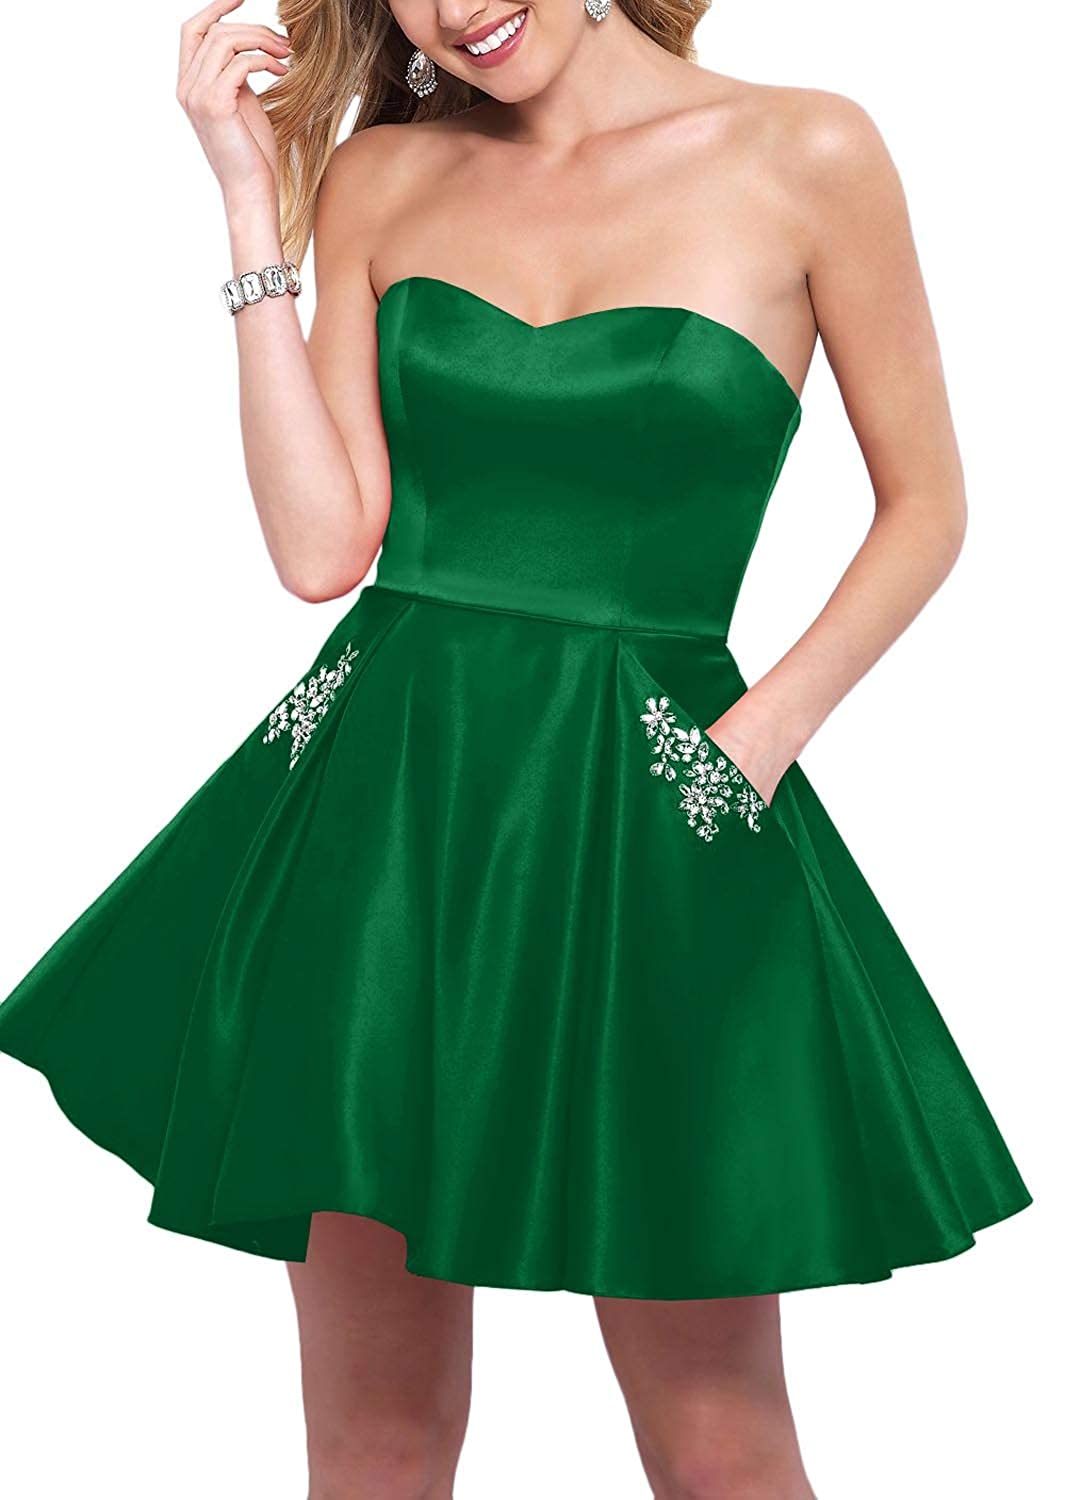 Green YnanLi Dress Short Ball Gown Homecoming Dresses 2019 Strapless Sweetheart with Beaded Pockets